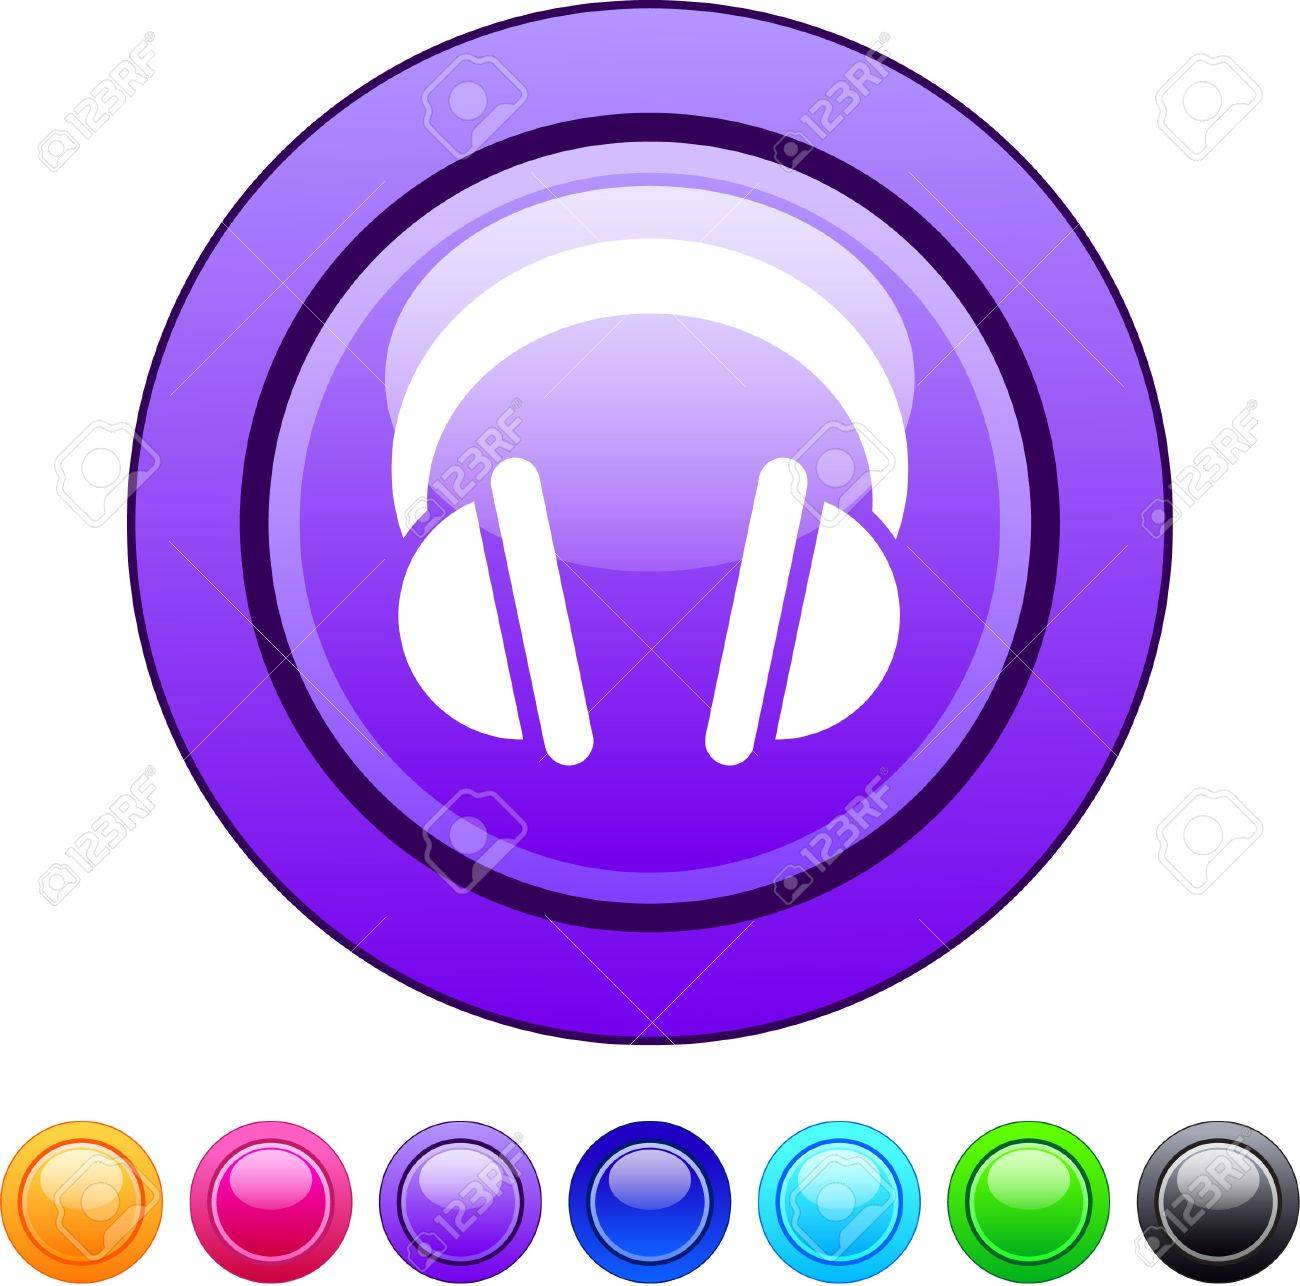 Headphones glossy circle web buttons. Stock Vector - 7252460